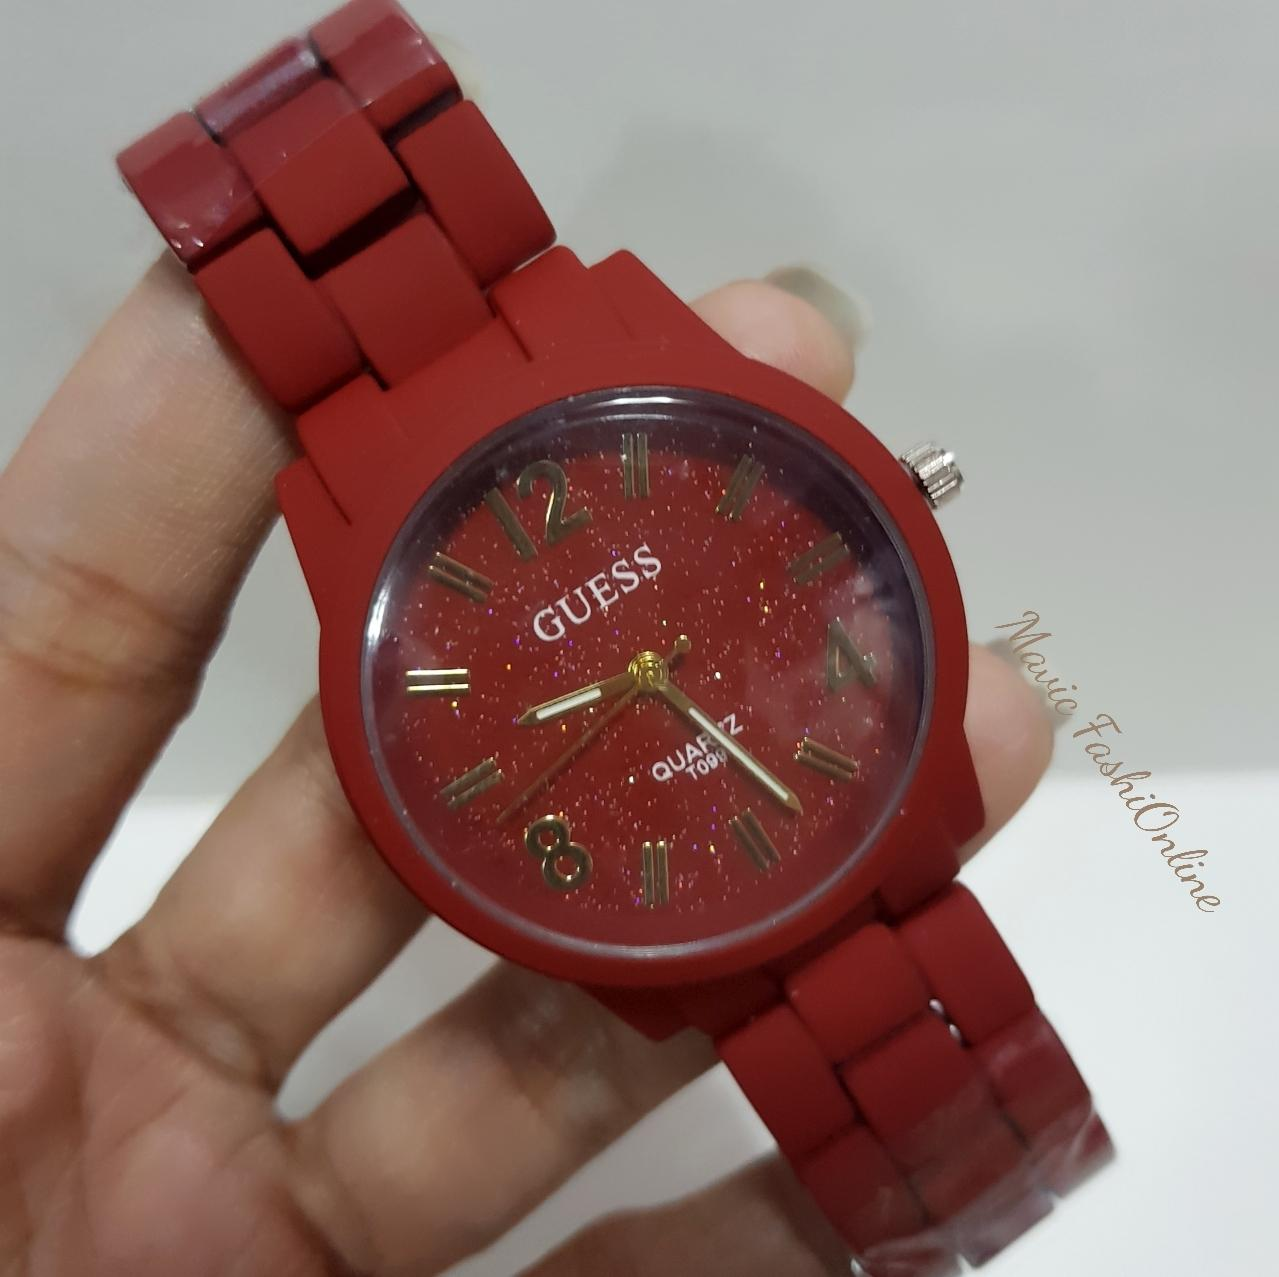 fabf4e32b Guess Philippines - Guess Watches for sale - prices & reviews | Lazada